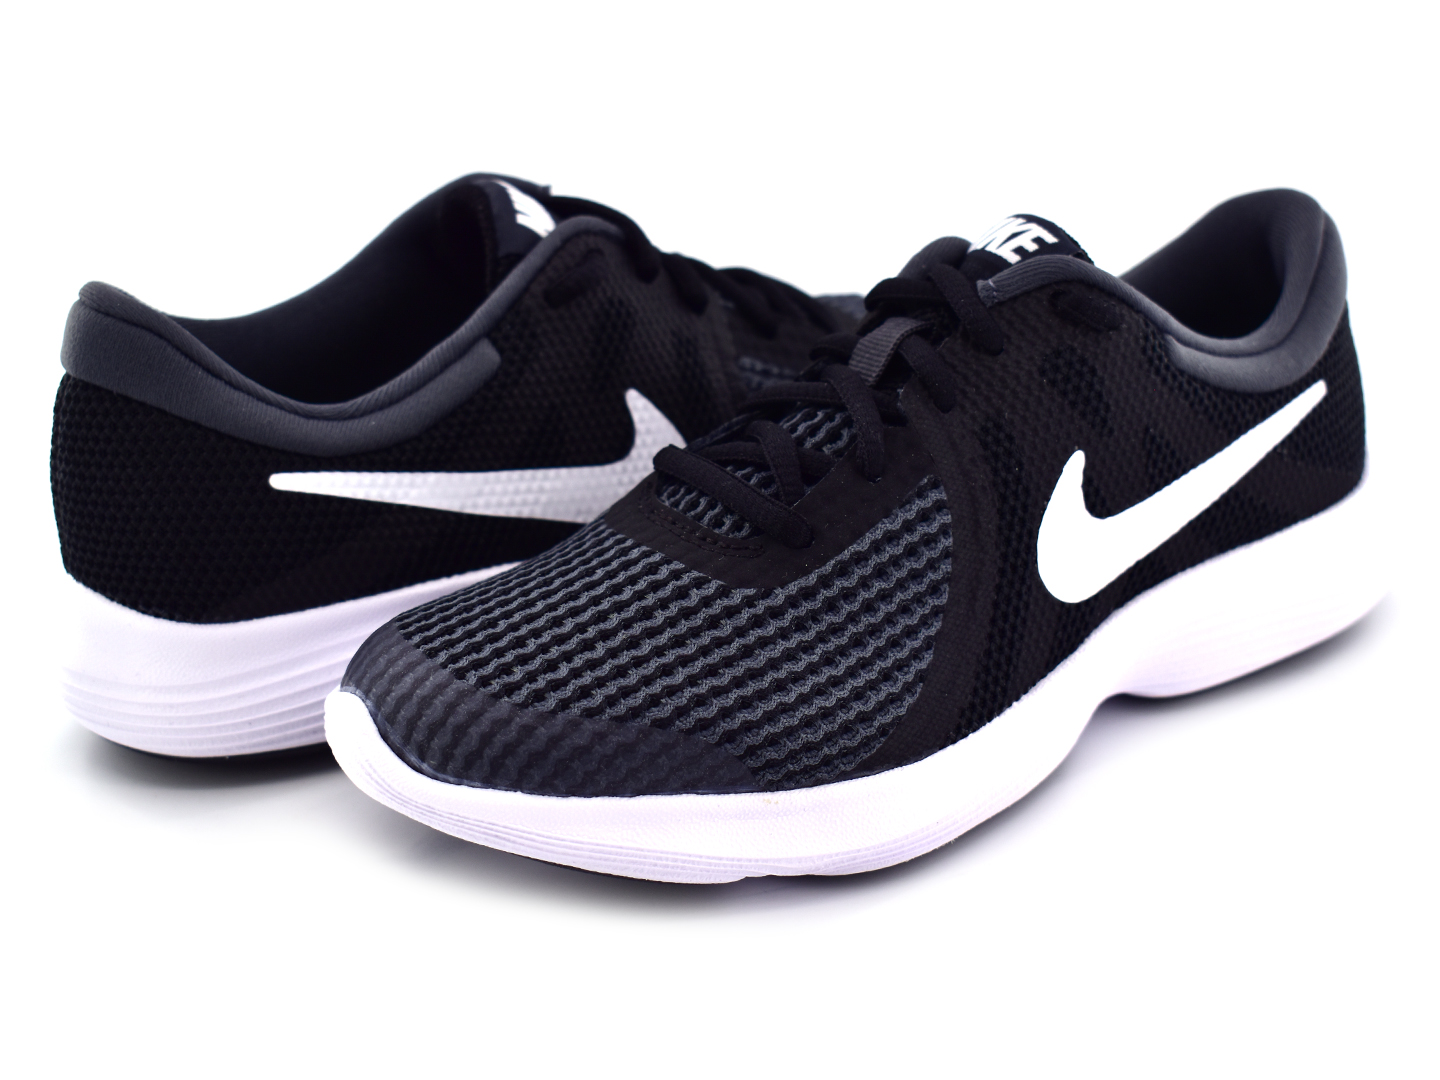 7f6713b95b2 NIKE 943309 006 BLACK WHITE ANTHRACITE REVOLUTION 4 (GS) 22.5